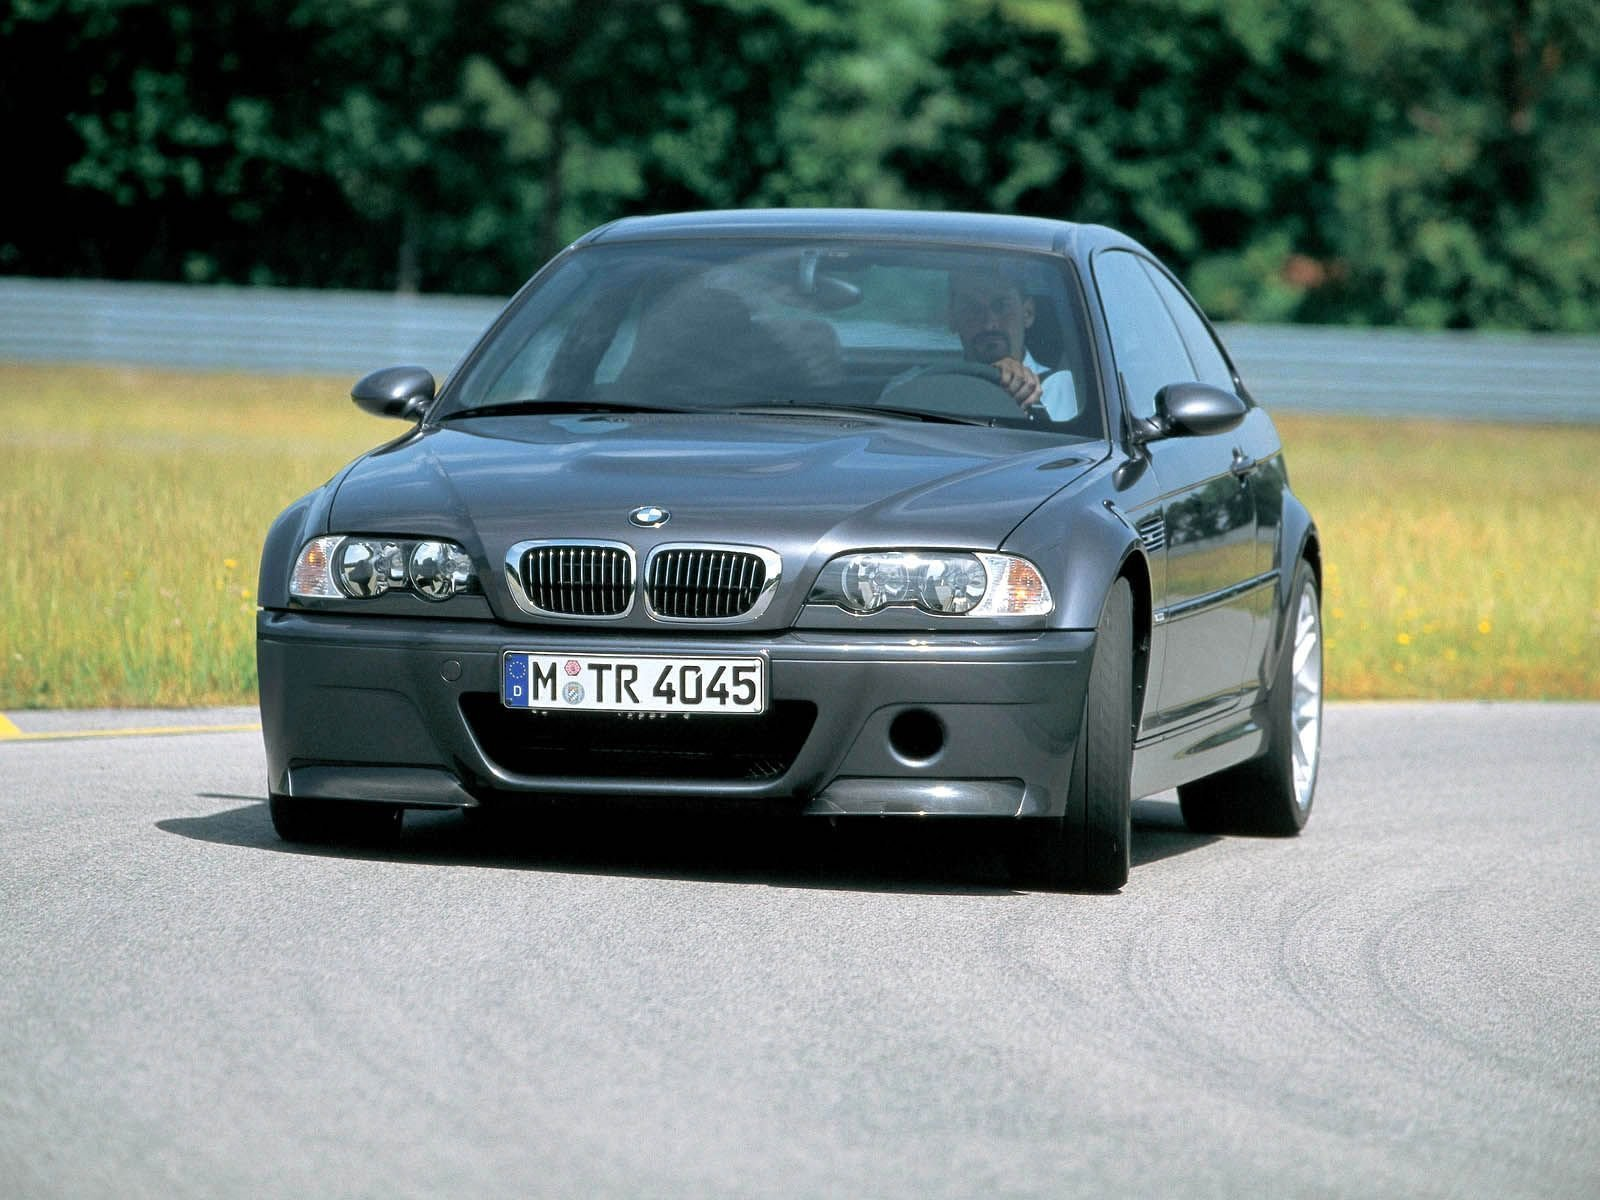 2005 bmw m3 e46 csl picture 30975 car review top speed. Black Bedroom Furniture Sets. Home Design Ideas